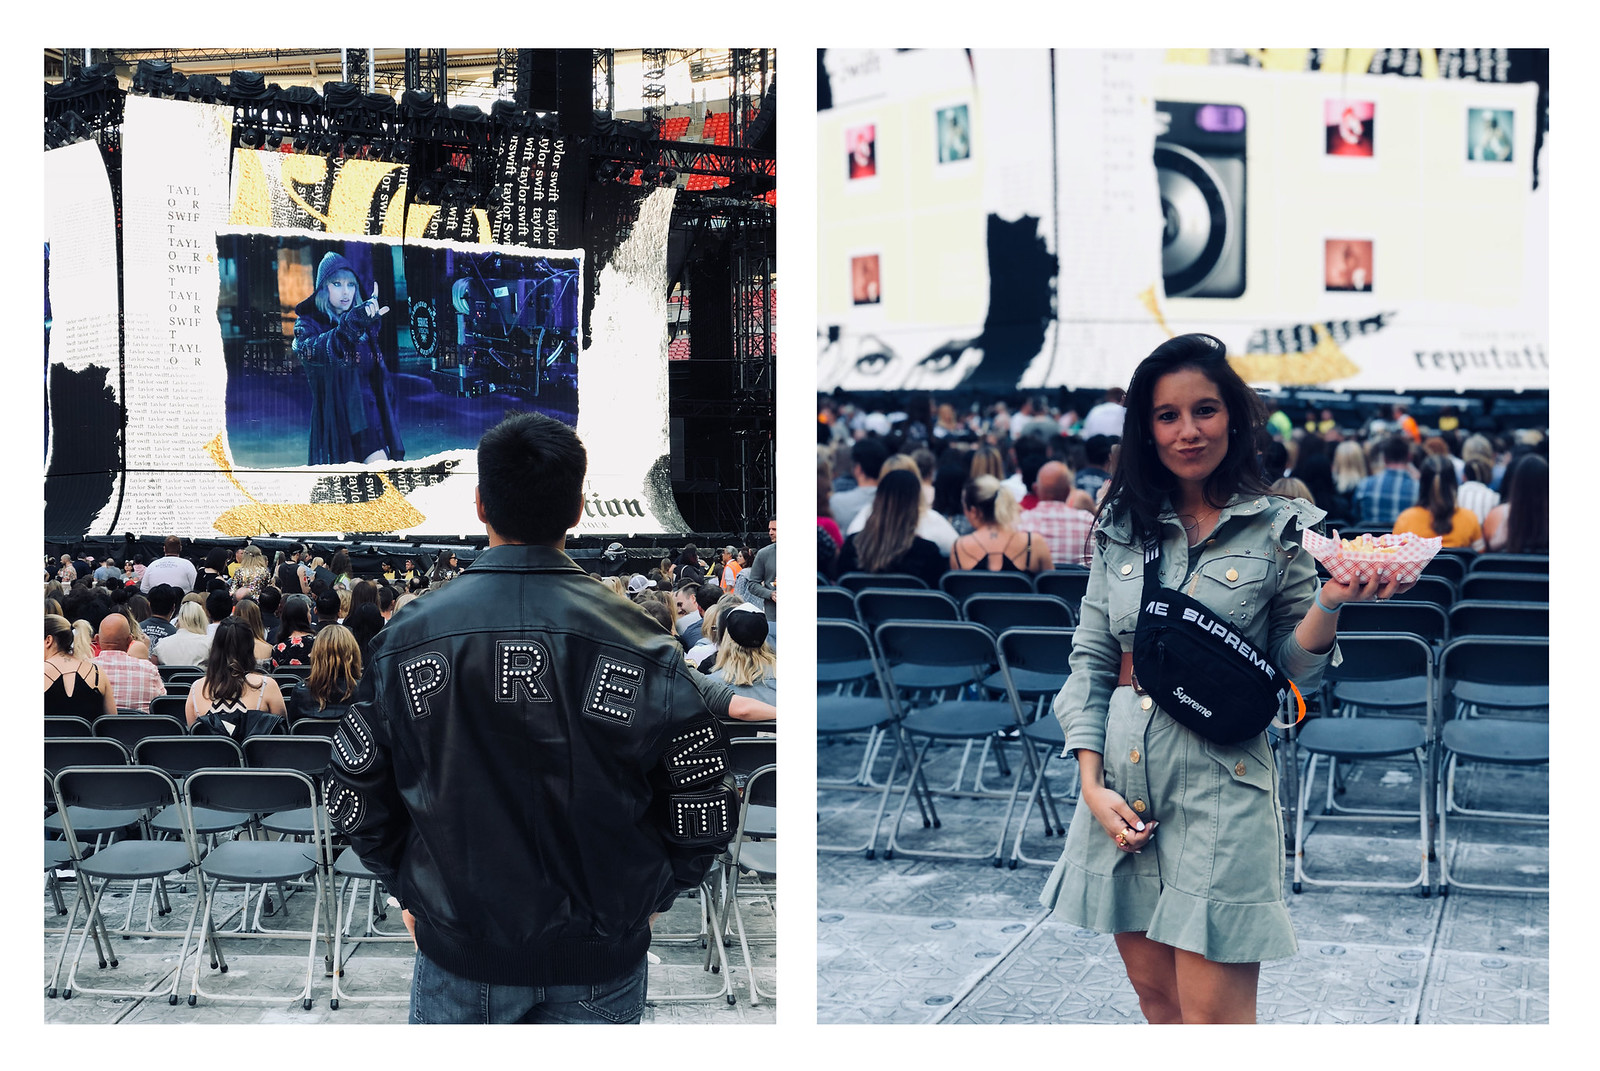 00_viajar_londres_2_dias_concierto_taylor_swift_theguestgirl_instax_fujifilm_laura_santolaria_londres_noholita_london_fashion_blogger_revolve_brand_ambassador_the_guest_girl_london